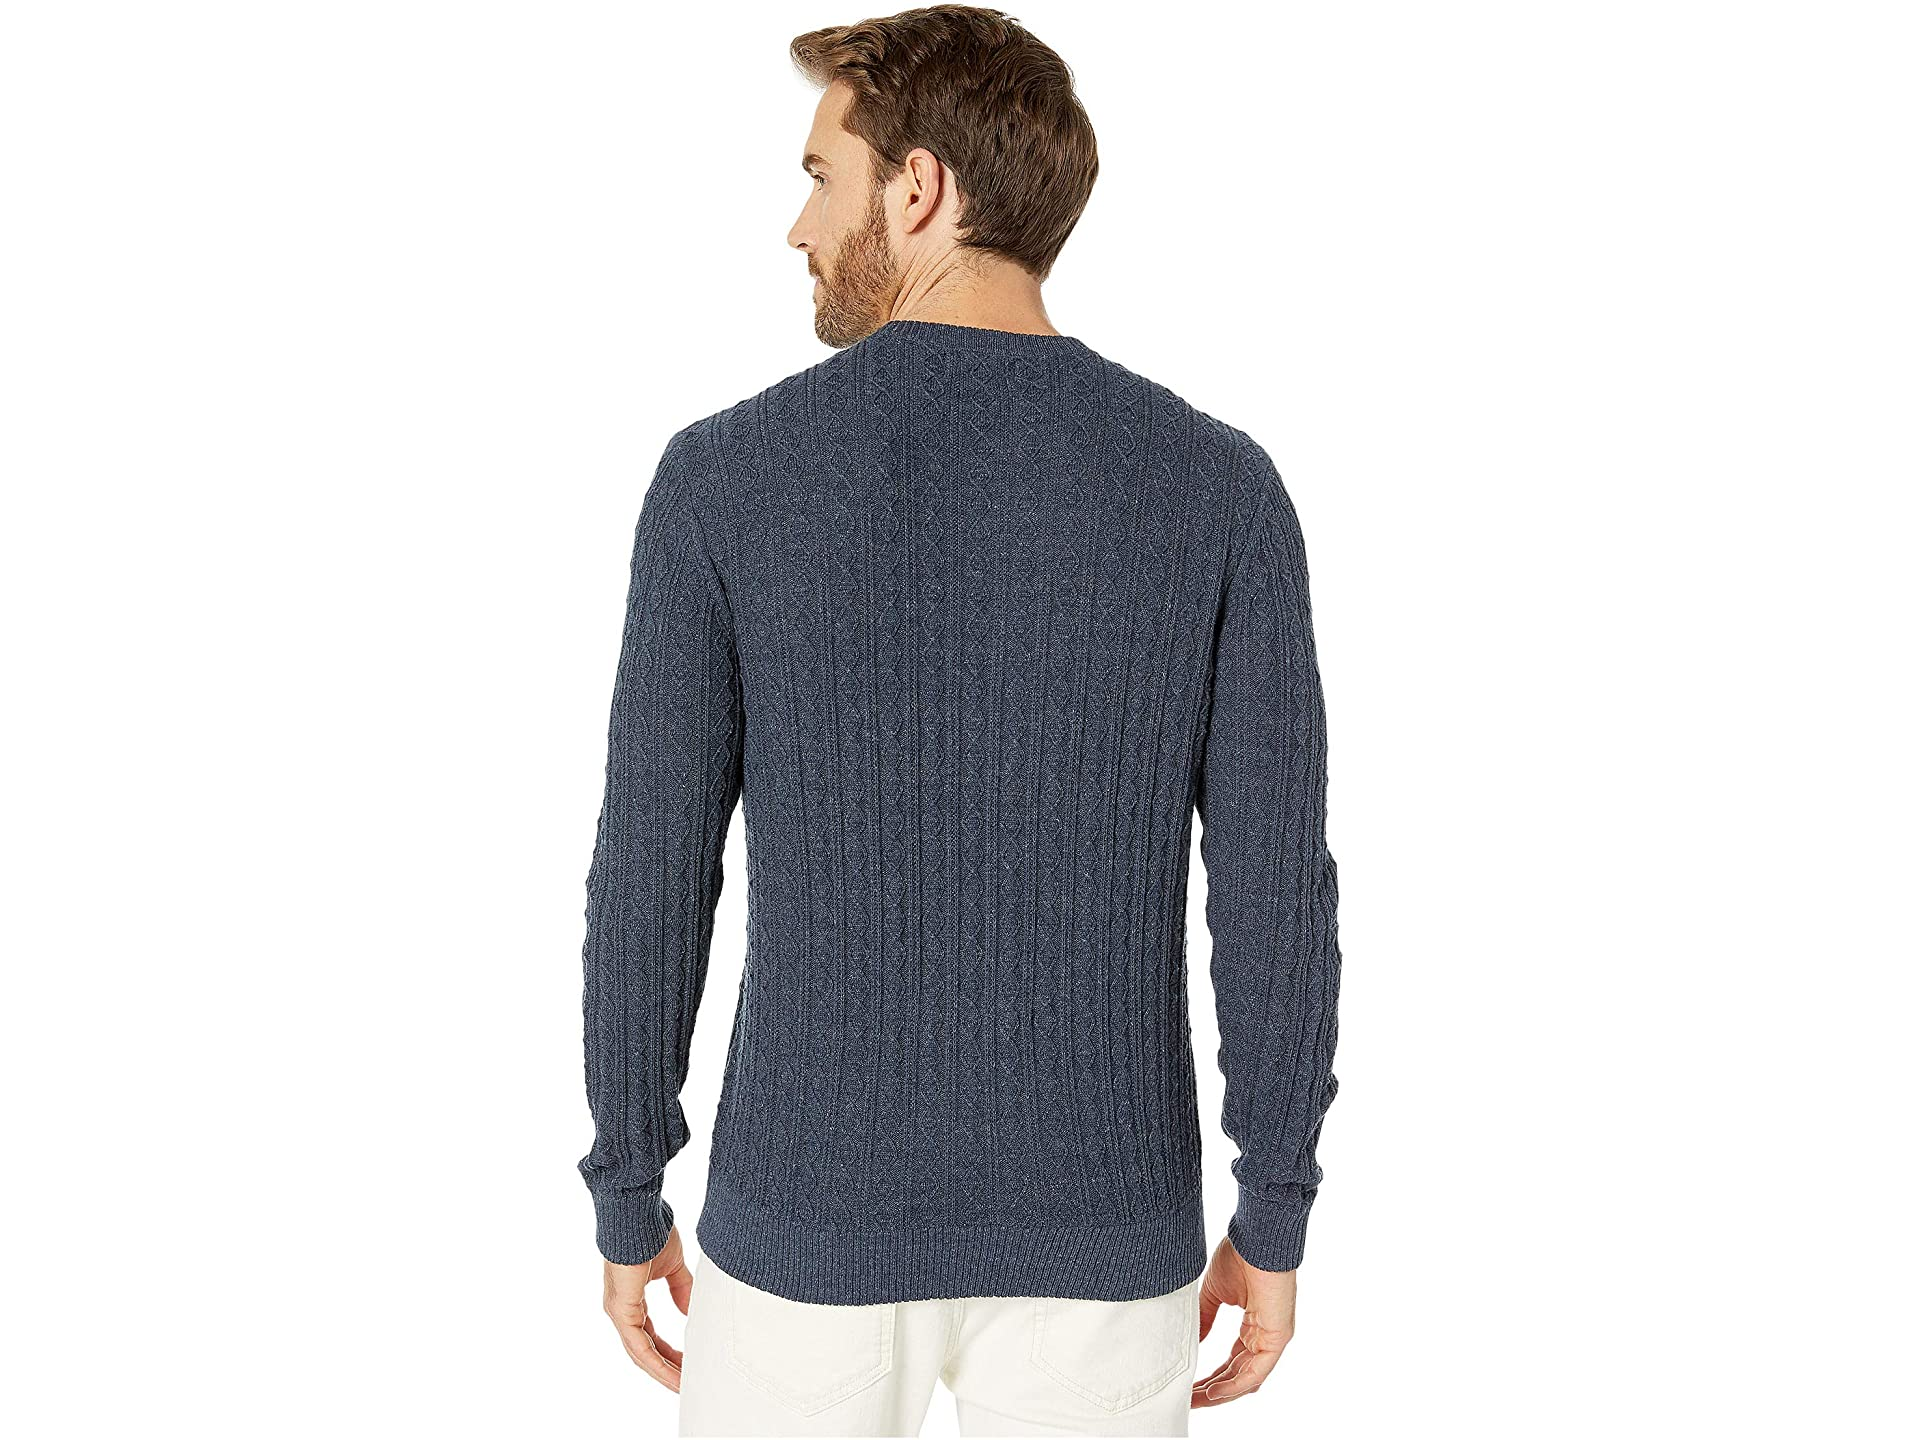 Southern Tide Perry House Cable Crew True Navy